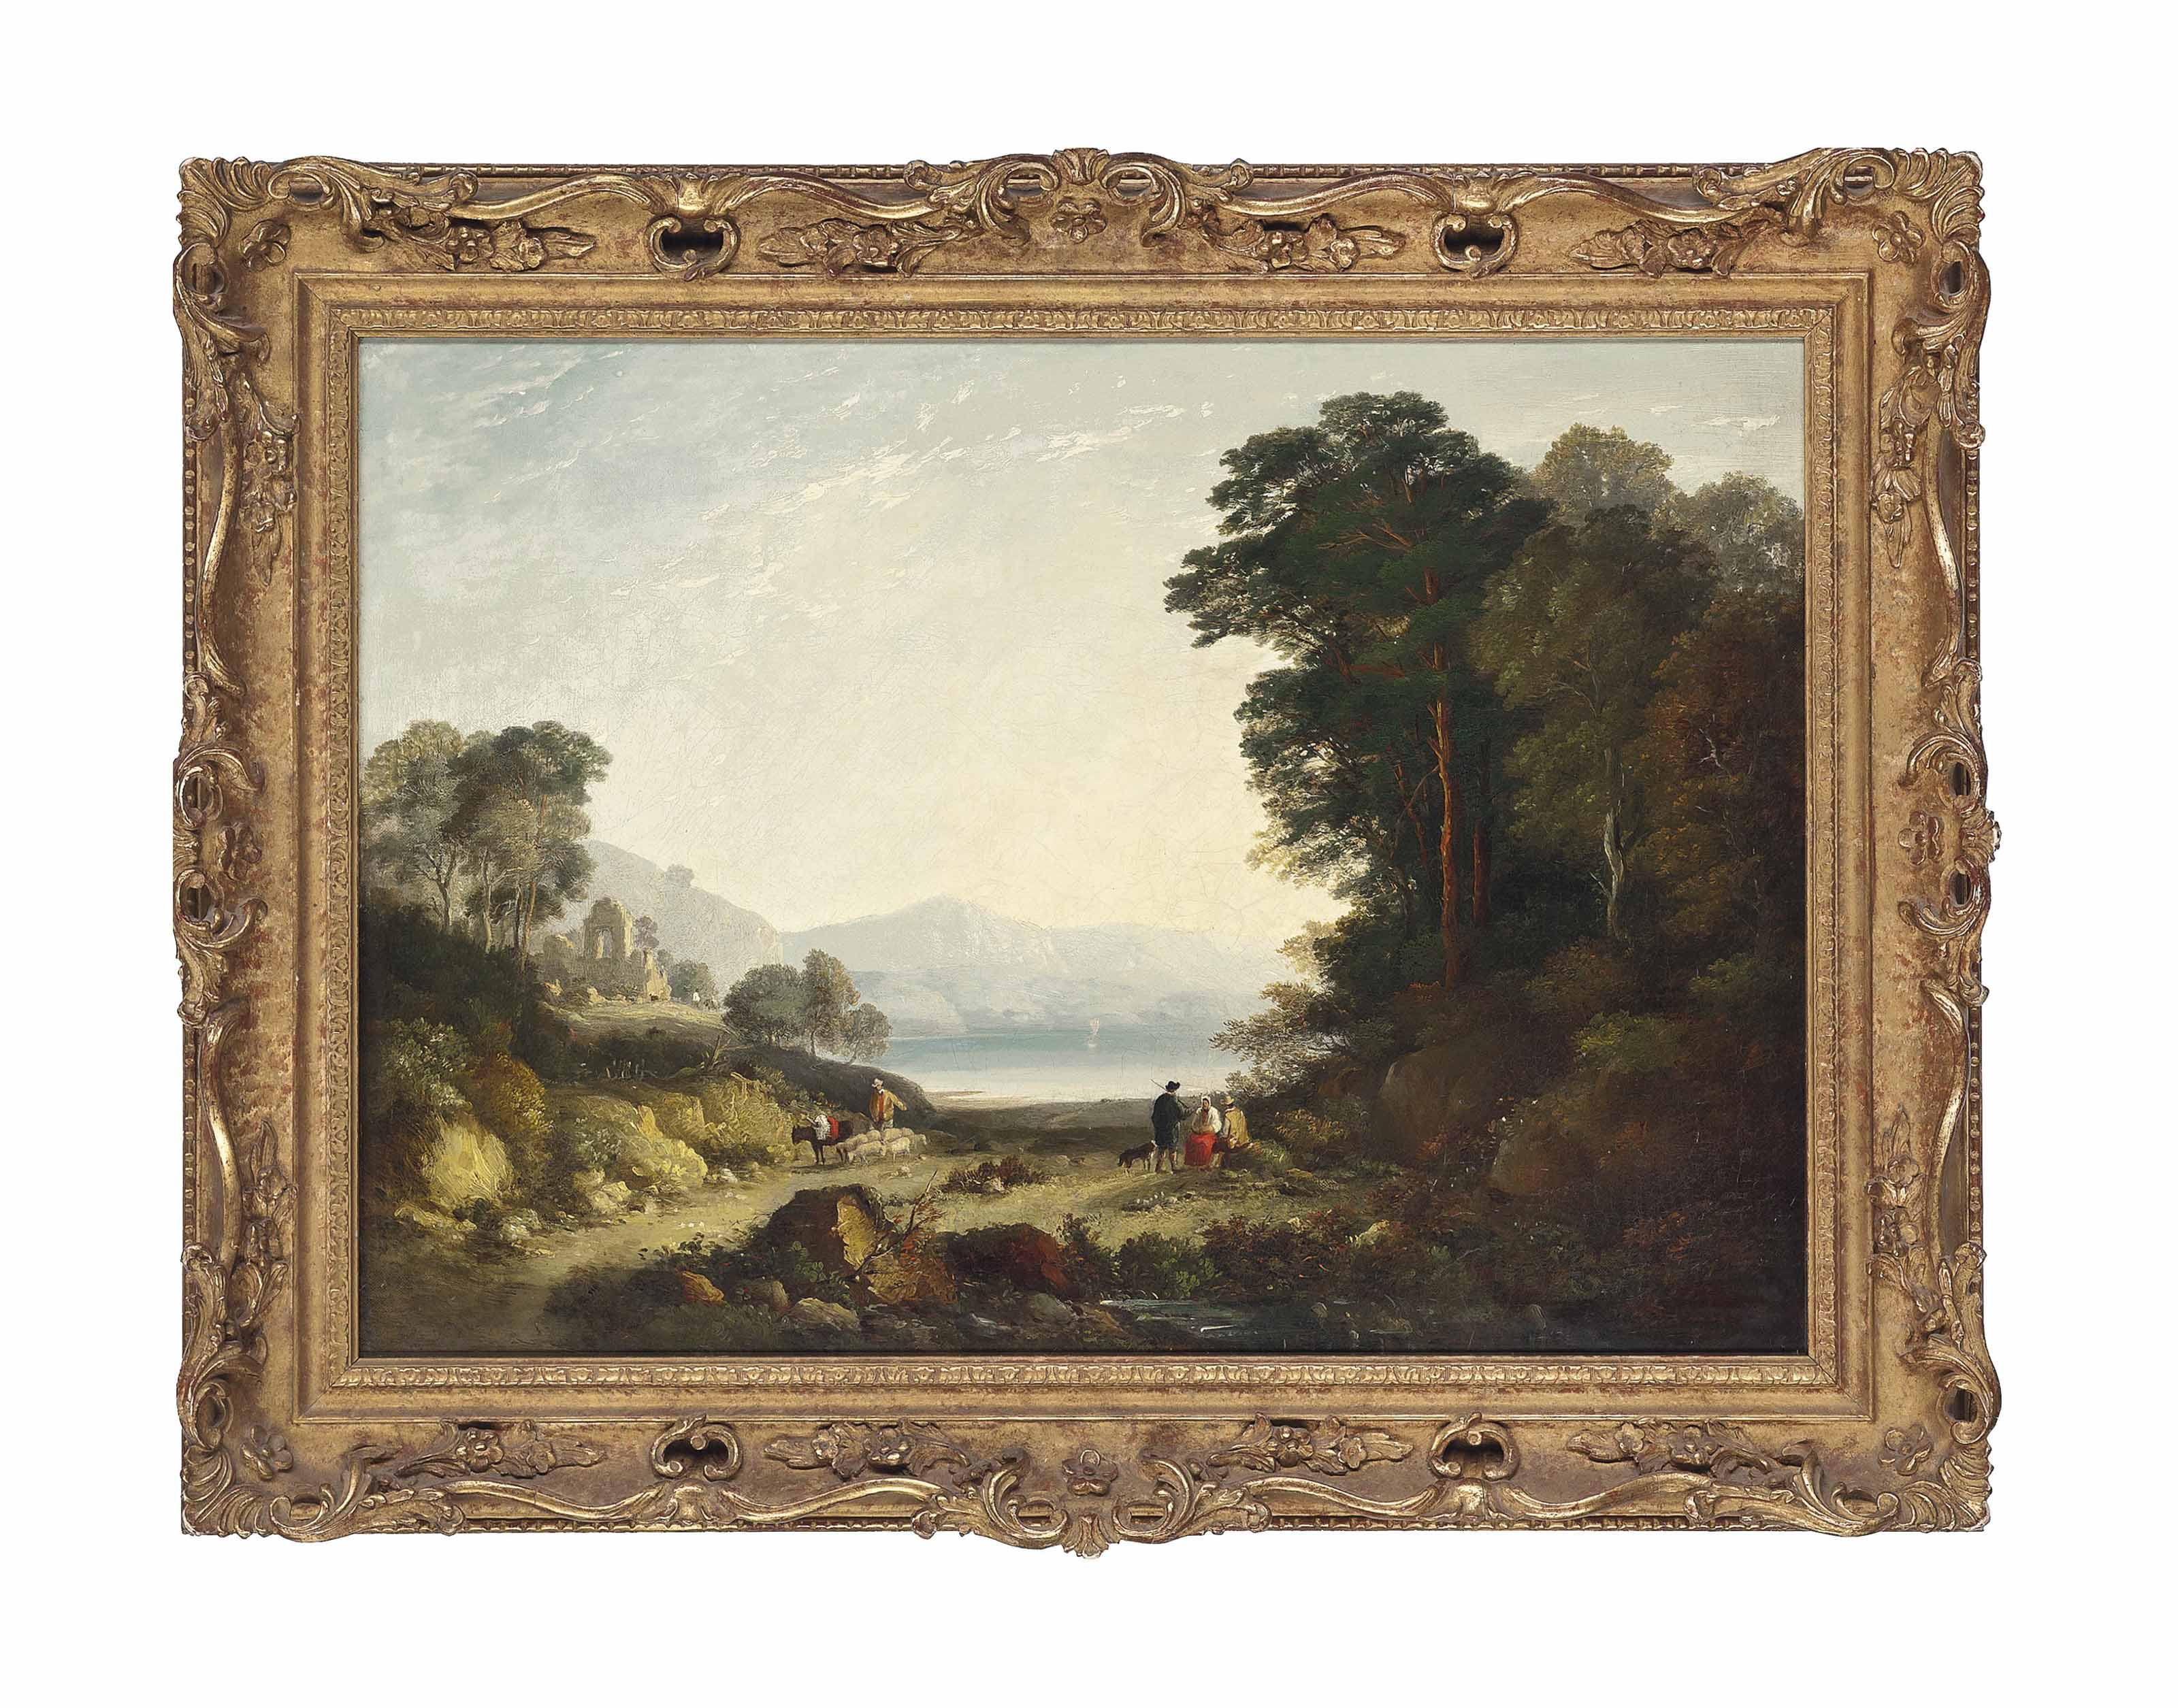 A wooded mountainous landscape, with shepherds and their flock by a lake